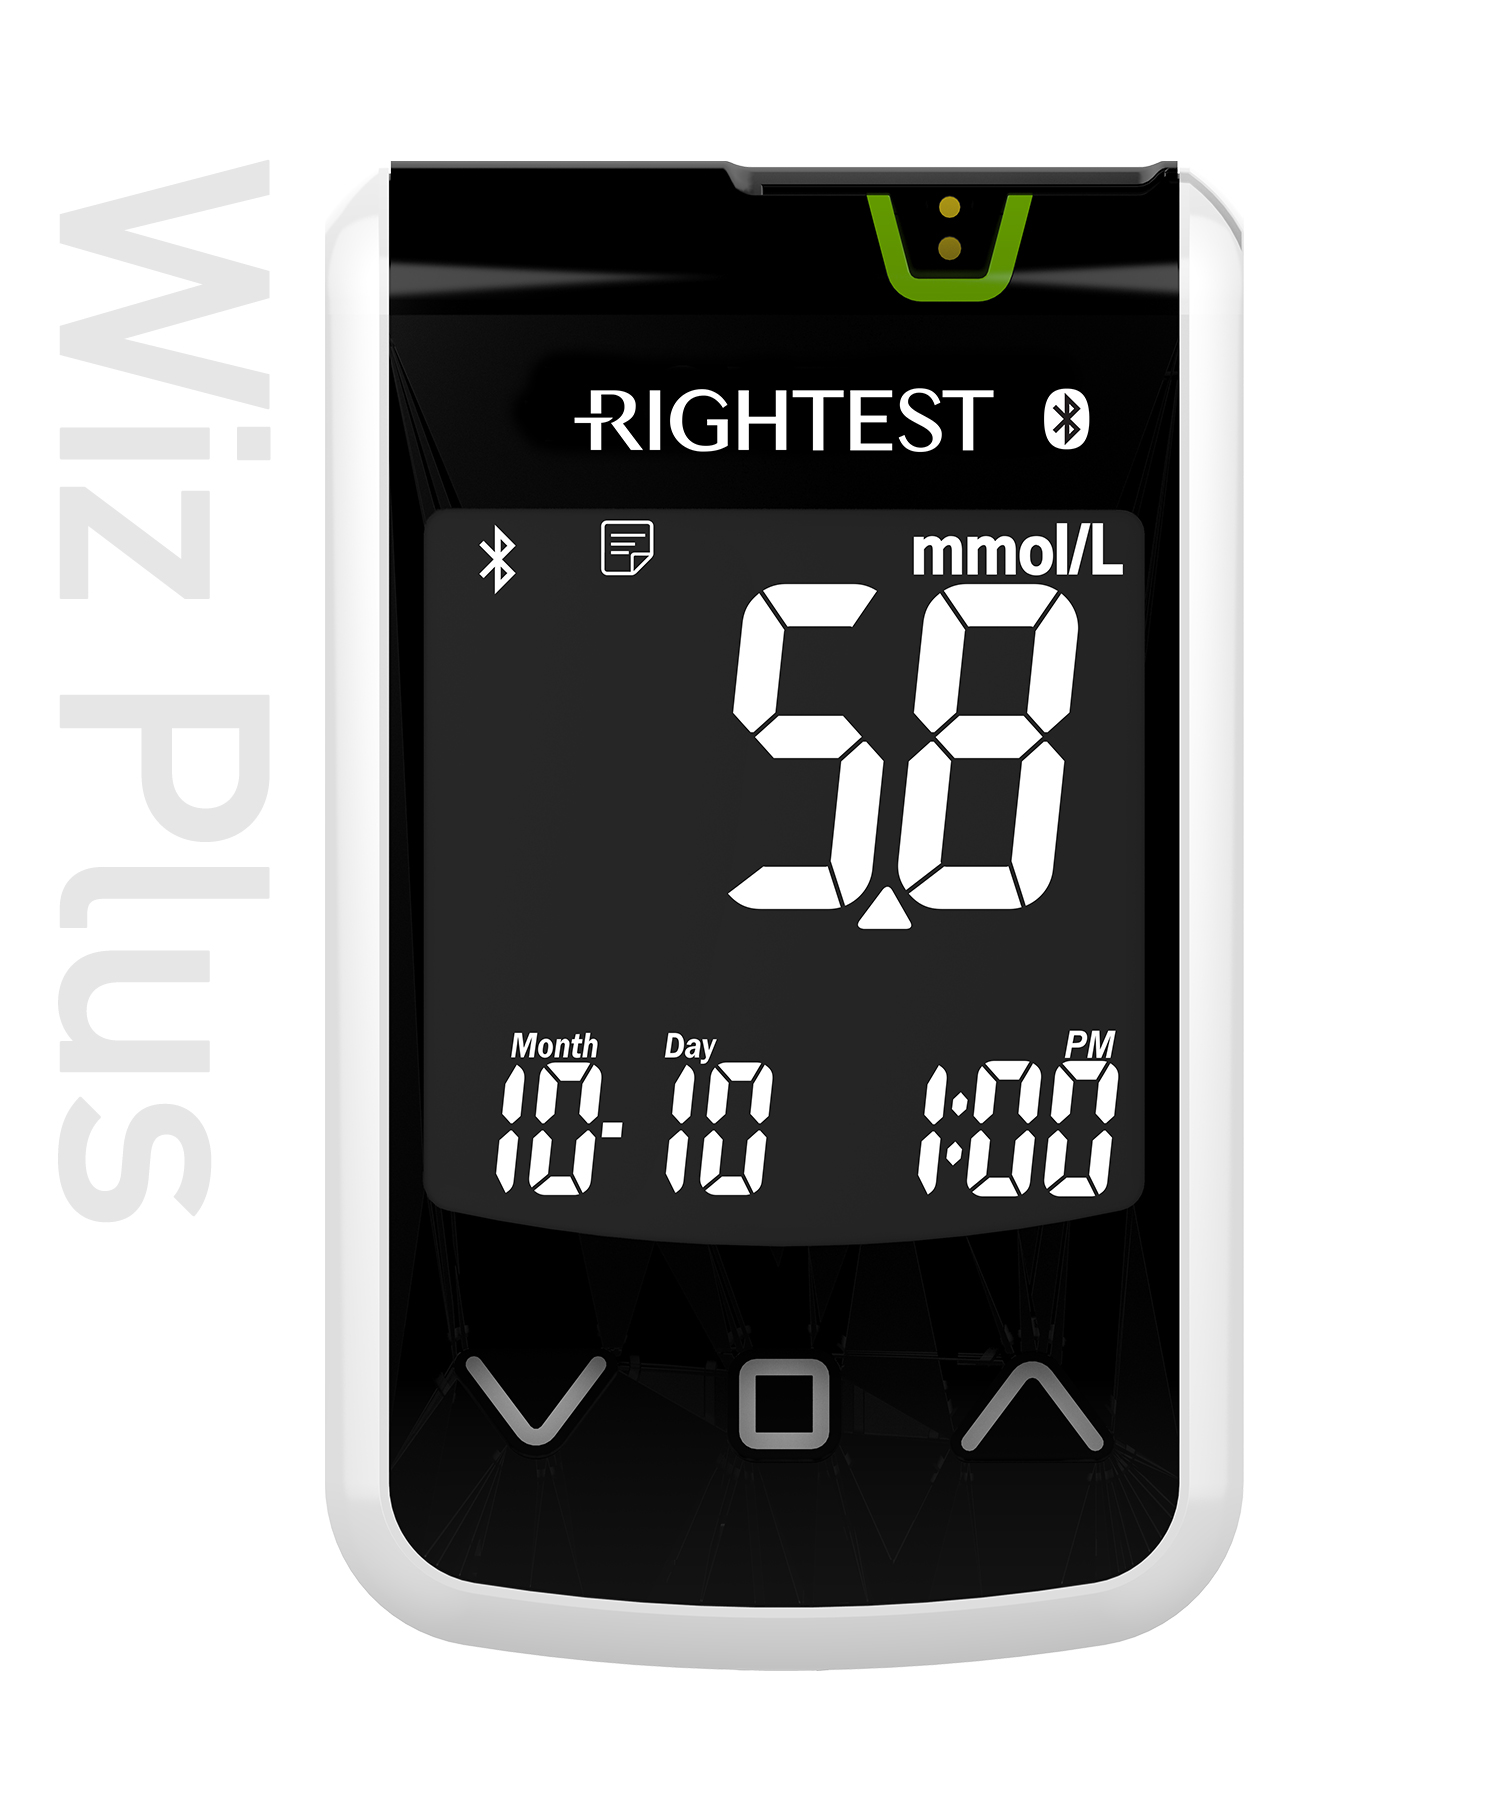 pro-img/05_Wiz/en/Wizplus(mmol)-Rightest-glucose-meter.jpg